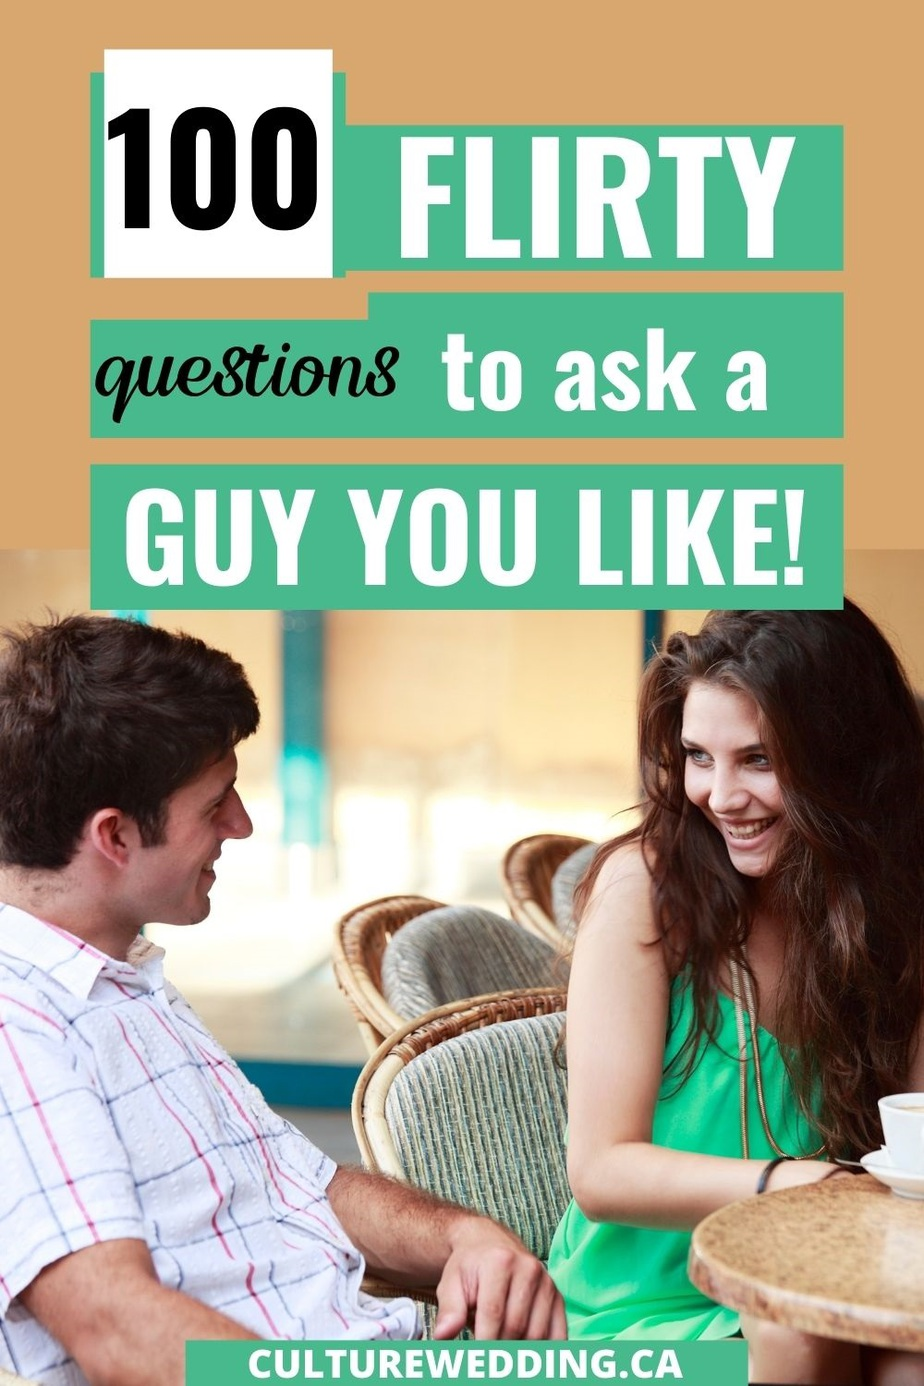 Fun, dirty and Flirty Questions to Ask a Guy: 100 Fun Flirty Questions for Him! Get to know your guy by asking him these flirty questions today! a collection of 100 flirty questions for him. Great icebreakers, too. flirty ideas | dating tips | relationship advice | how to flirt | questions to ask a guy